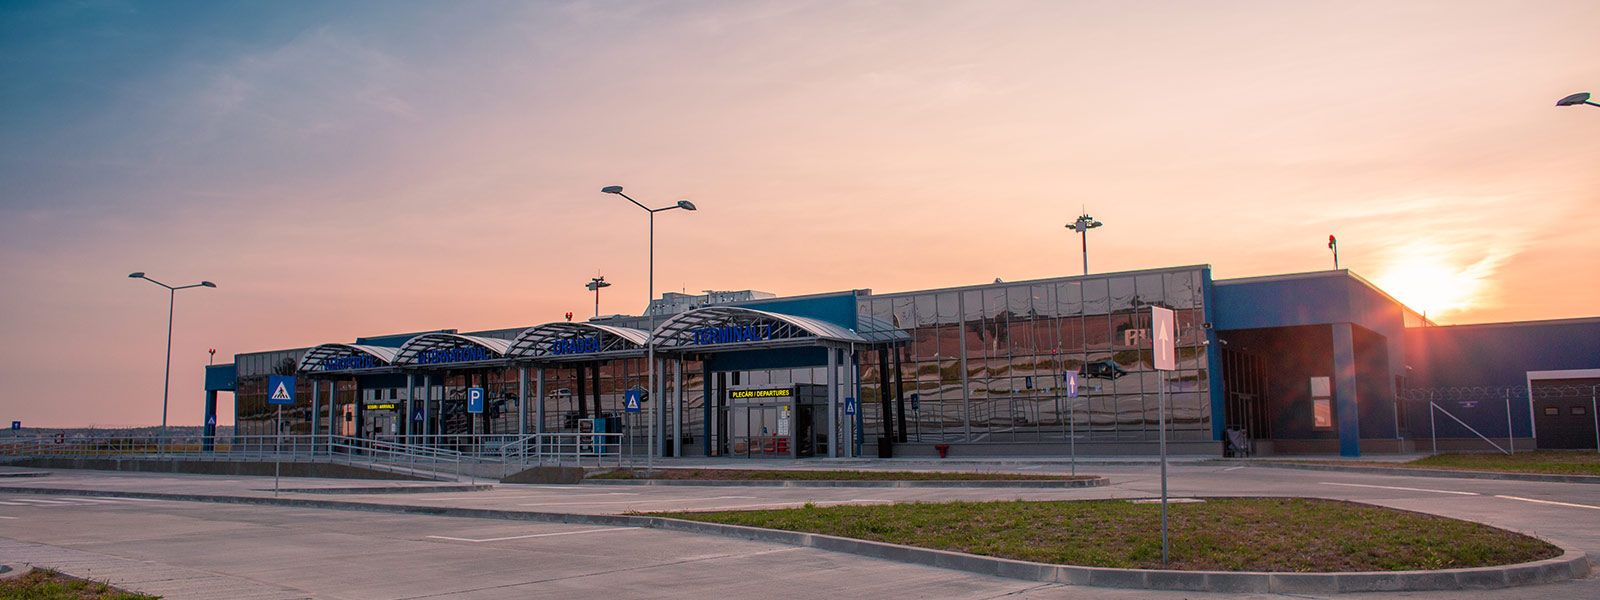 WELCOME TO ORADEA AIRPORT